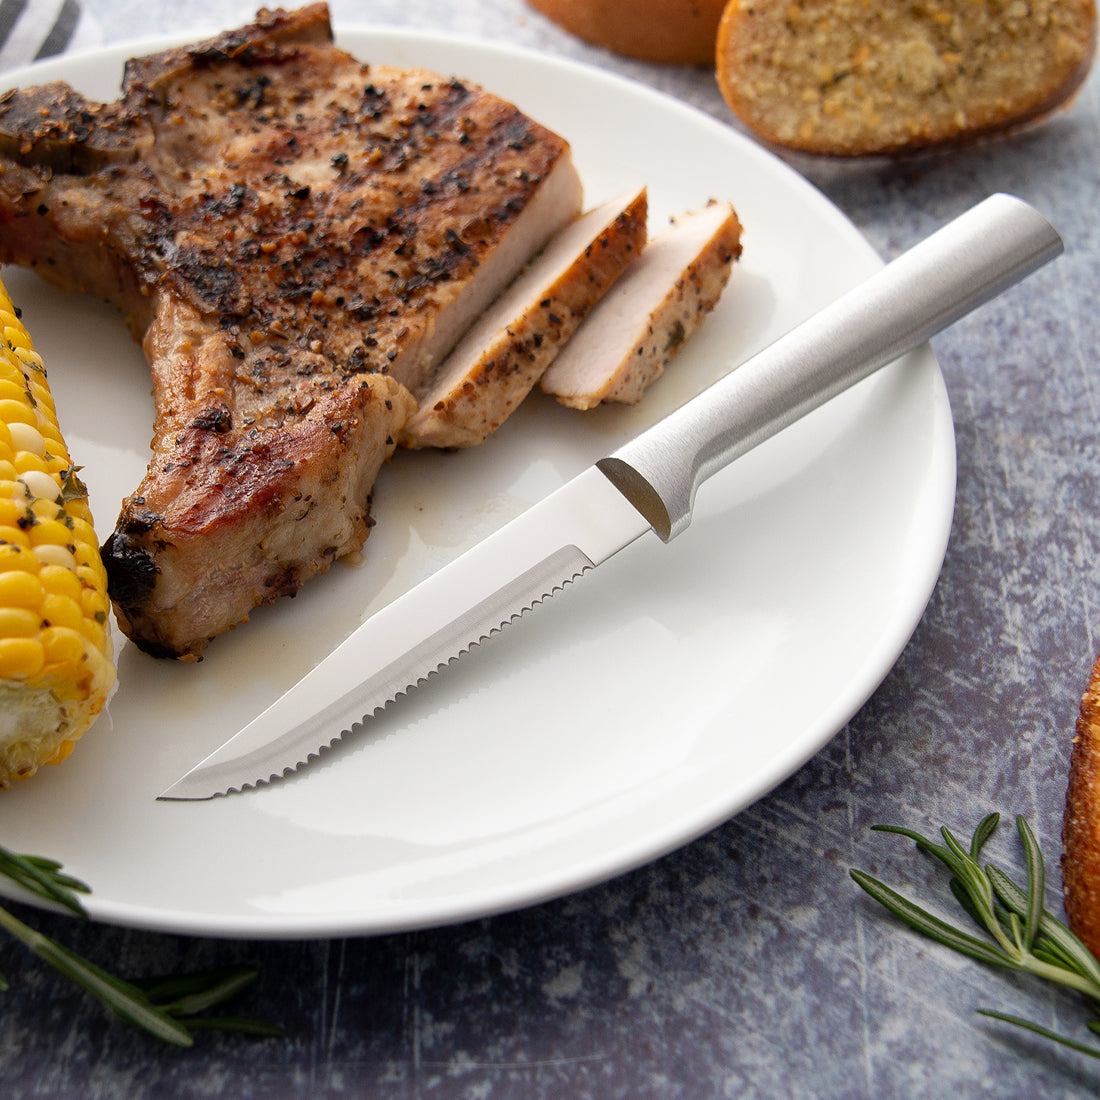 Rada Cutlery Serrated Steak knife with silver handle on plate with sliced pork chop.